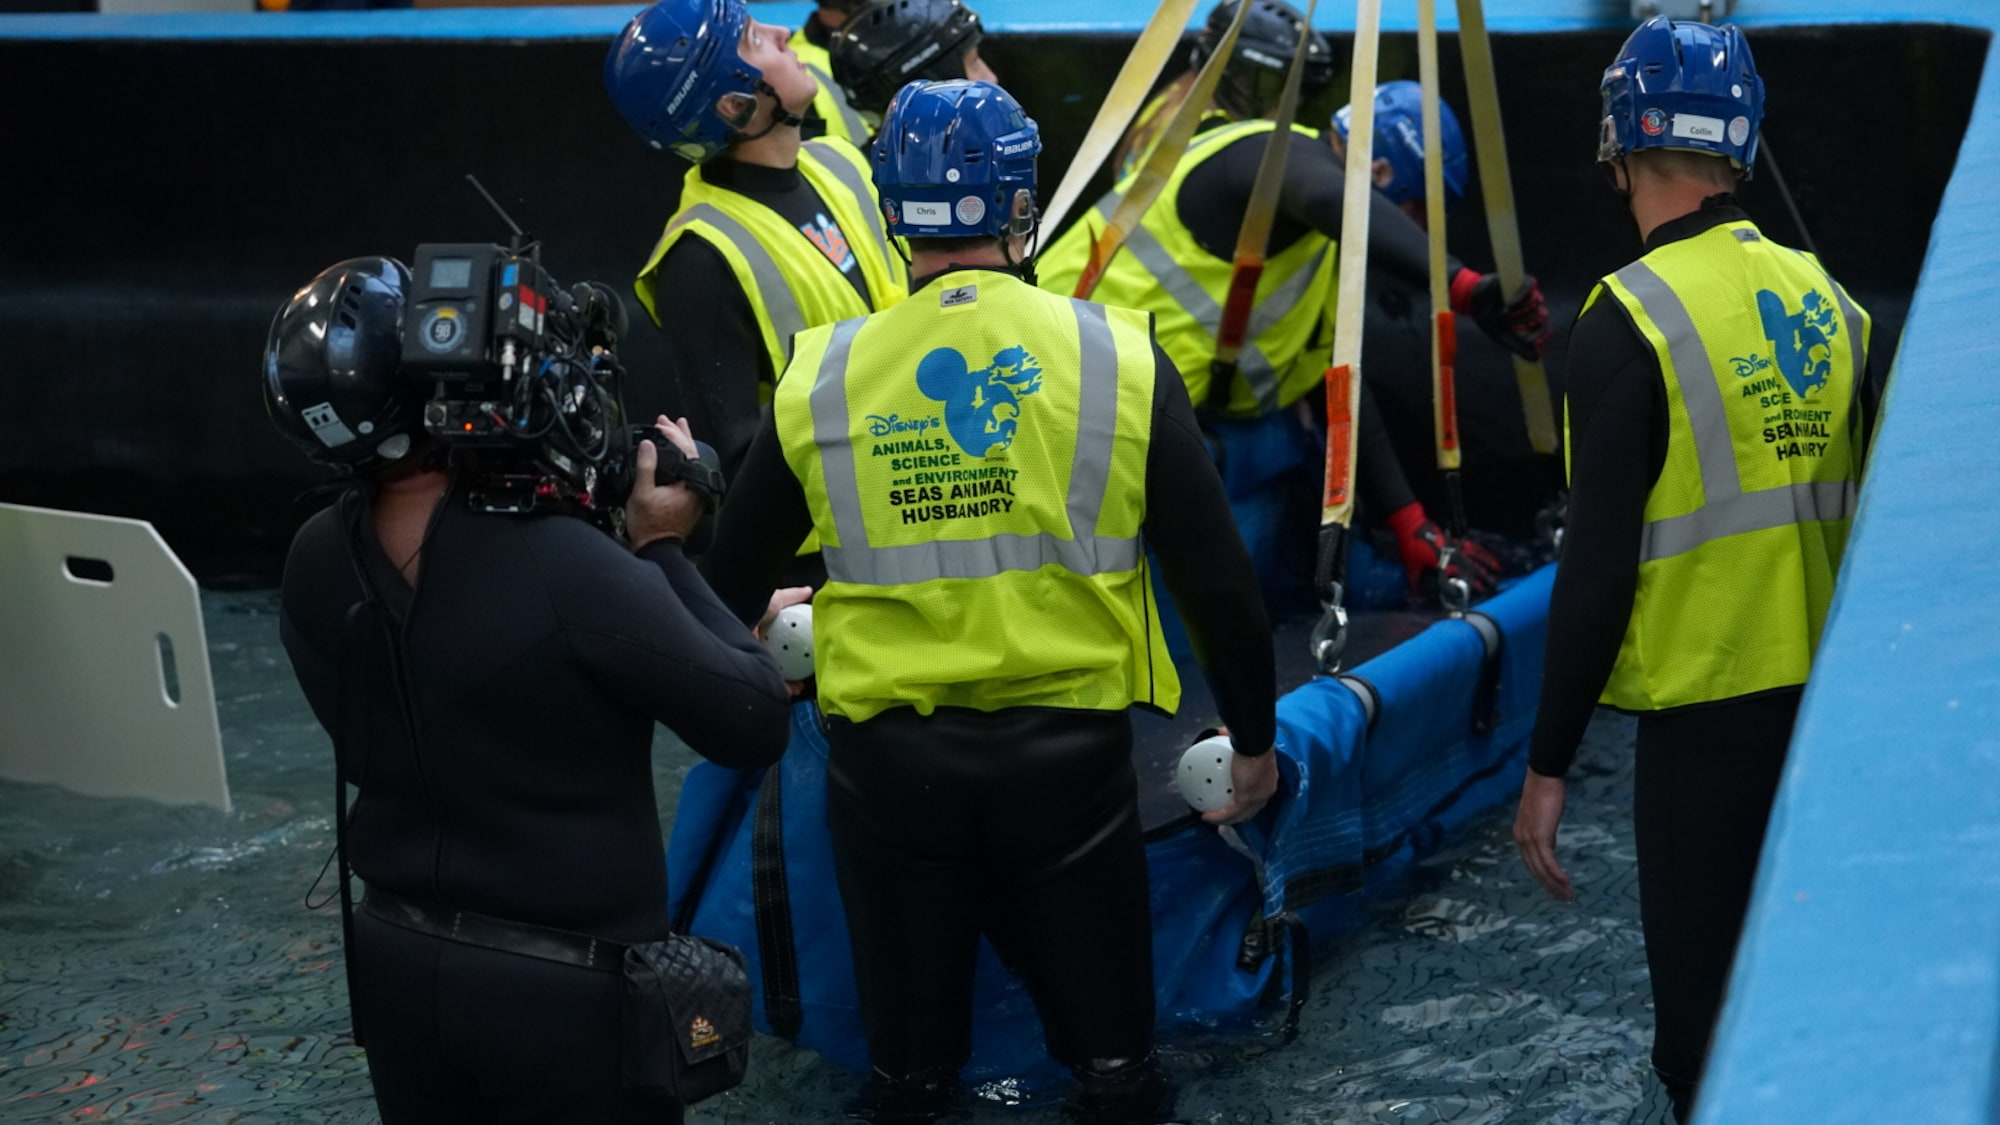 Production team film as Lou the manatee is transported to the veterinarian treatment room. Aquarist looks up at the rest of the team located on the roof of the aquarium. (Disney)